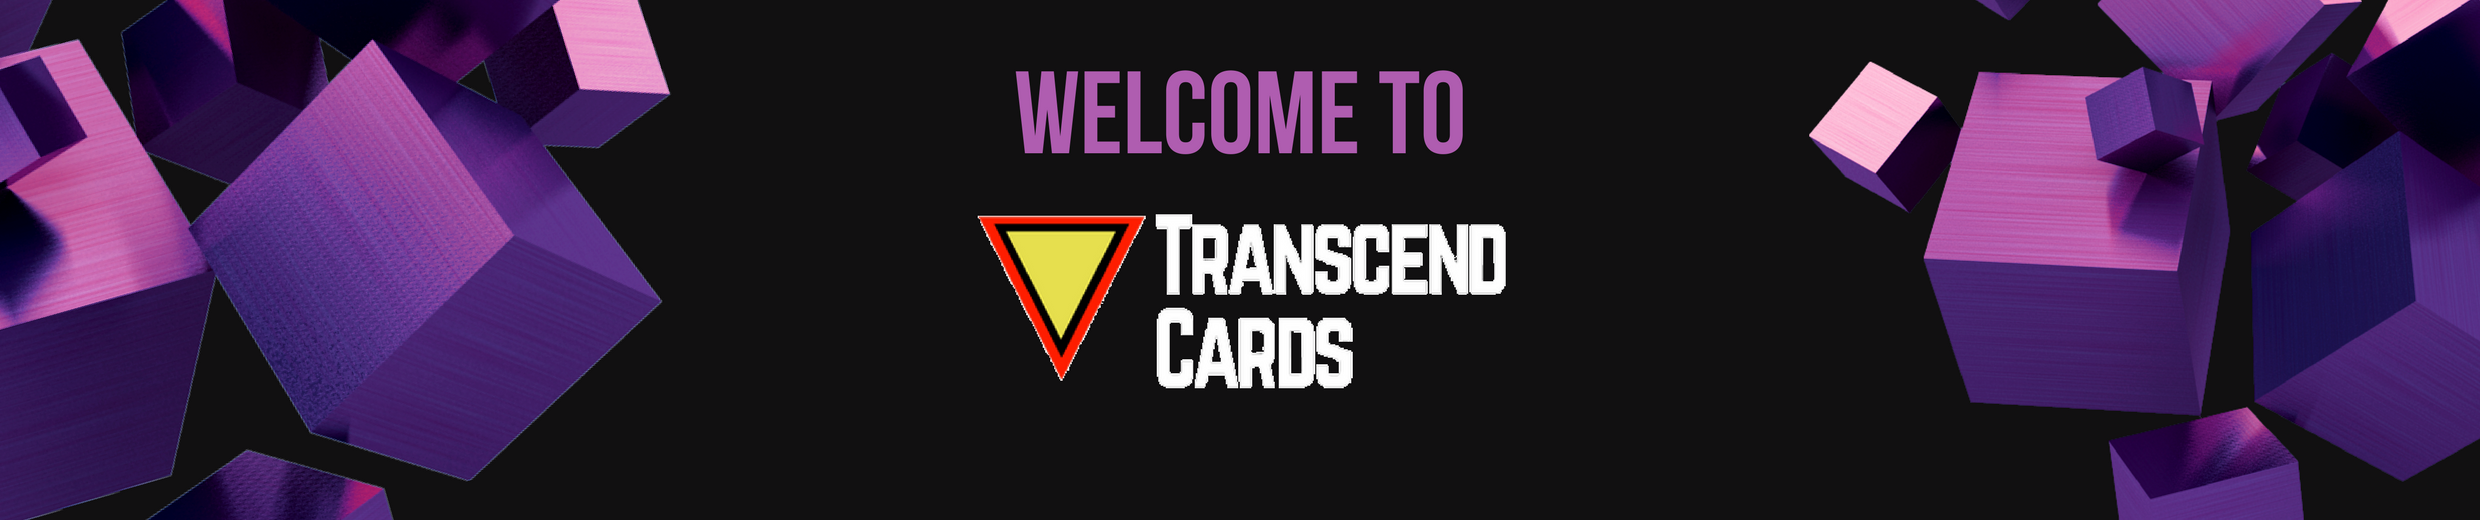 Transcend cards about us banner